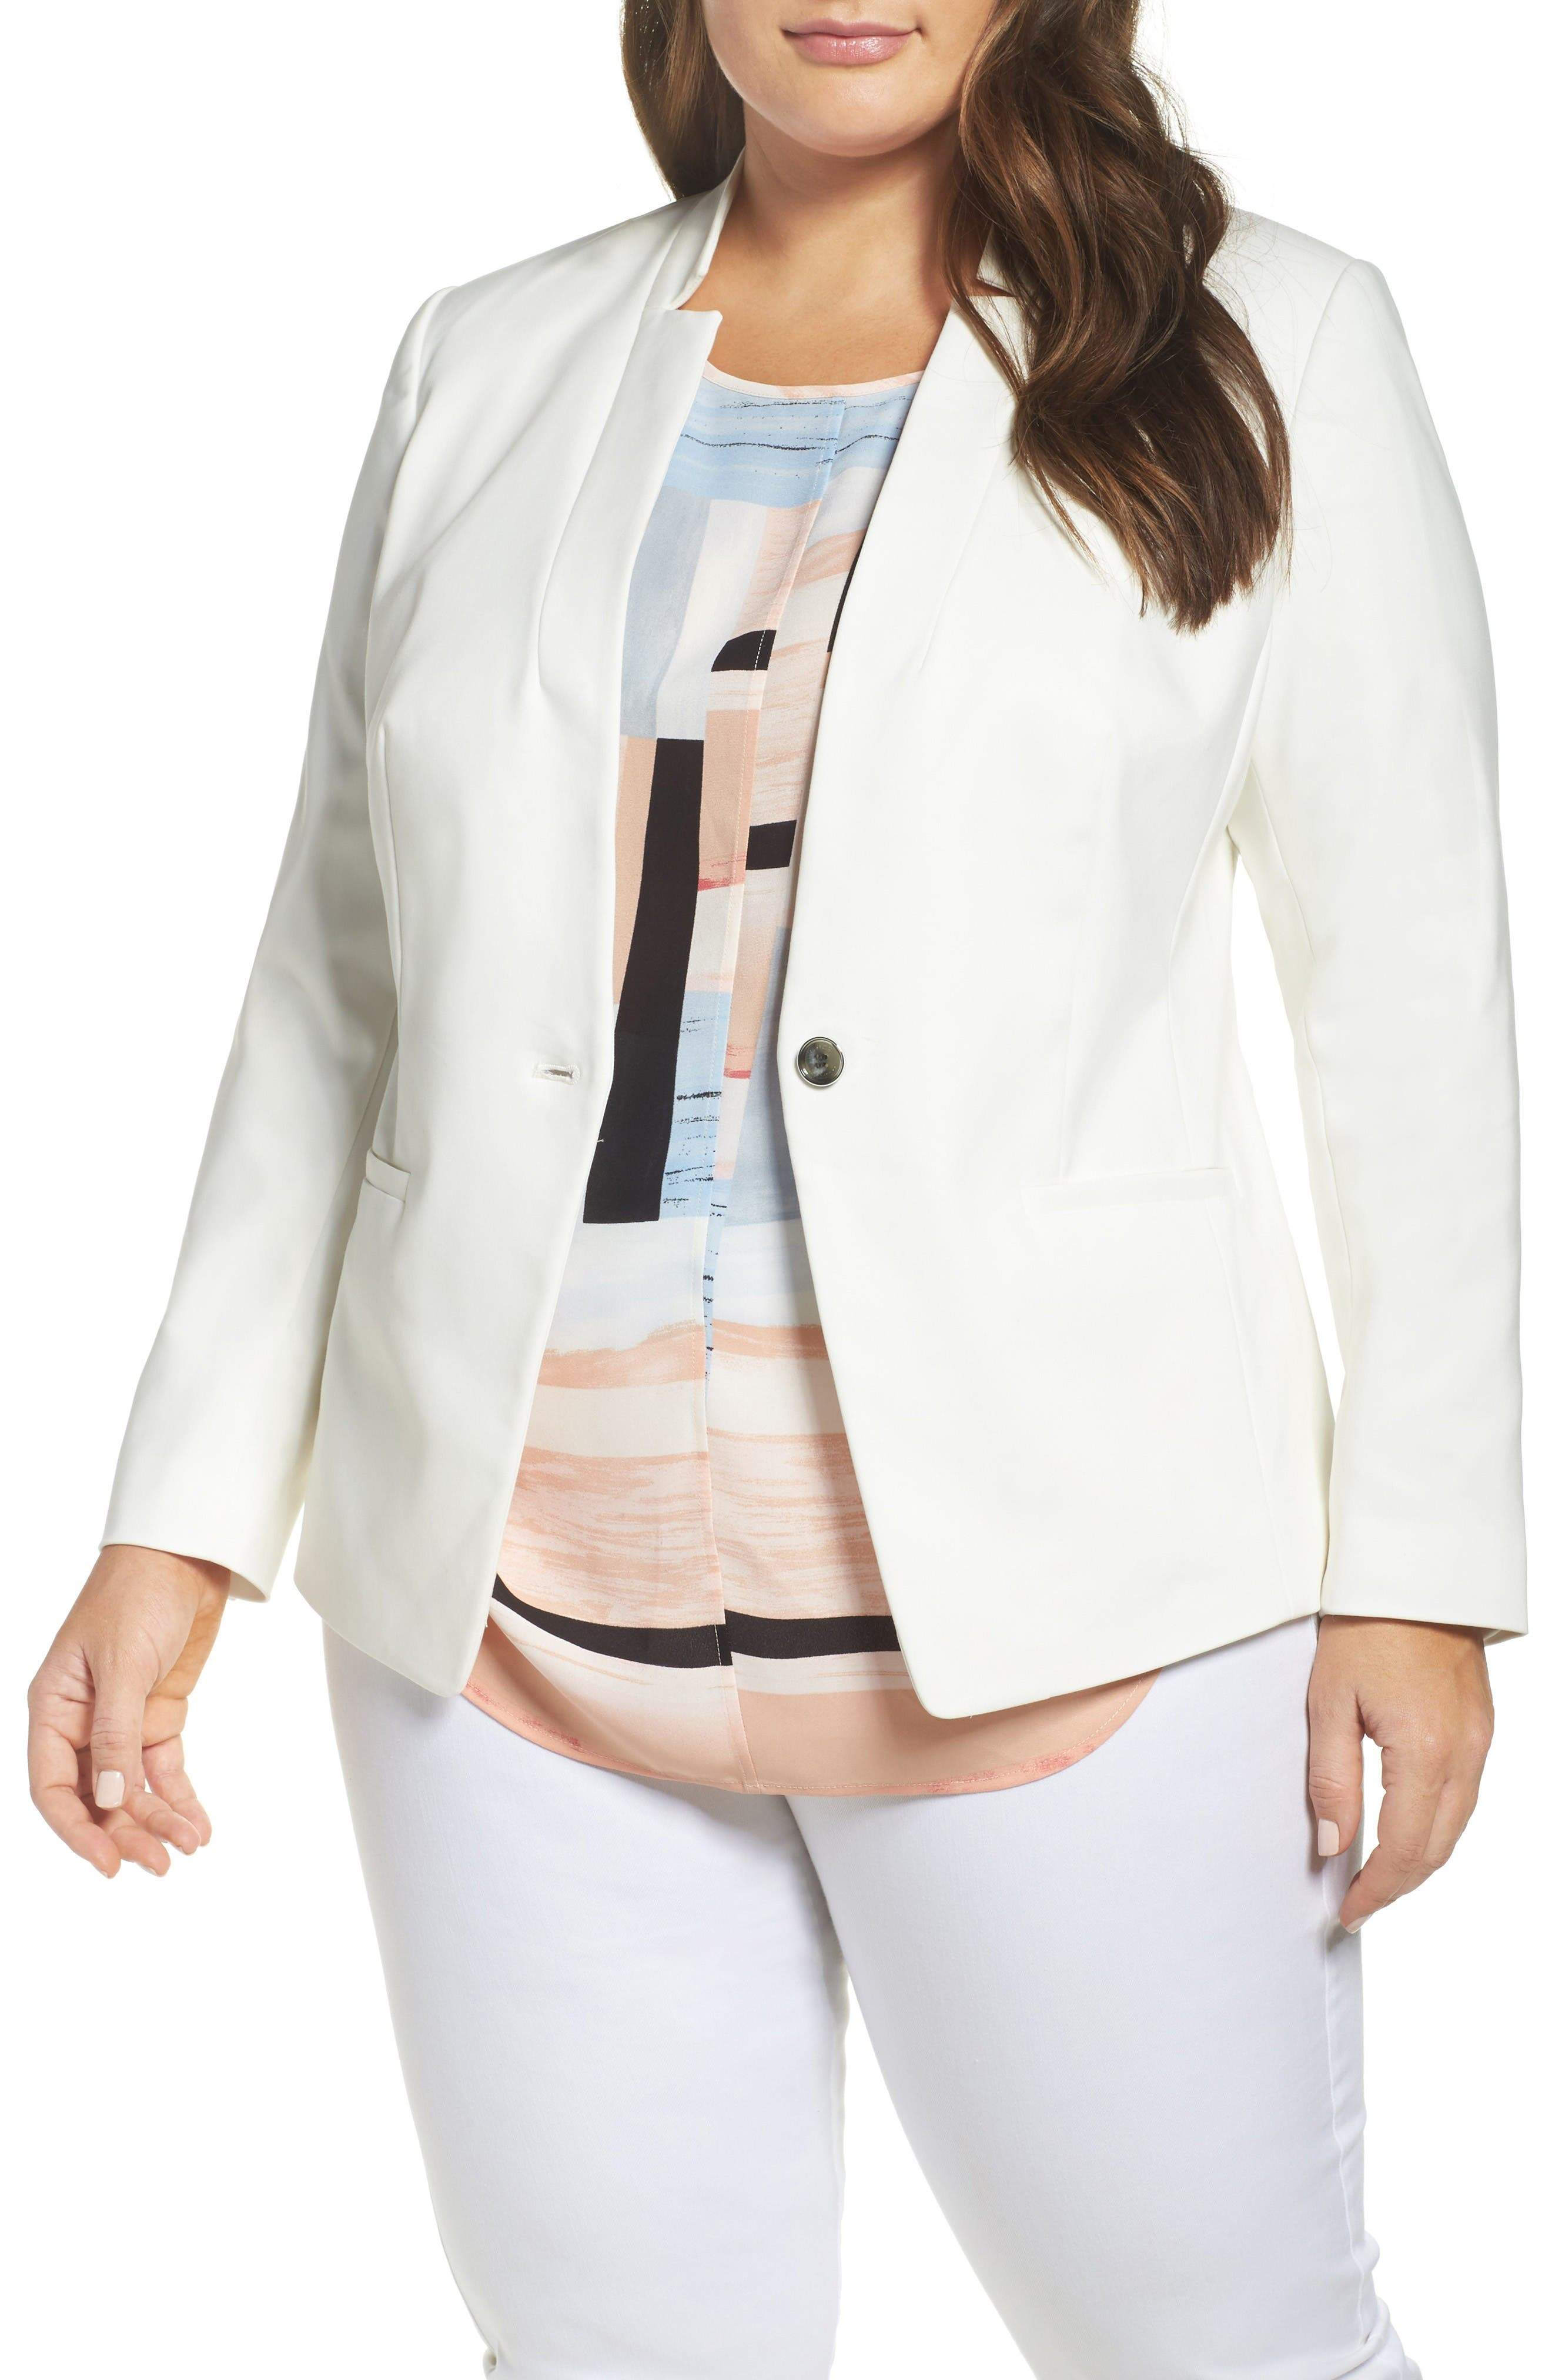 Alternate Image 1 Selected - Vince Camuto One-Button Blazer (Plus Size)